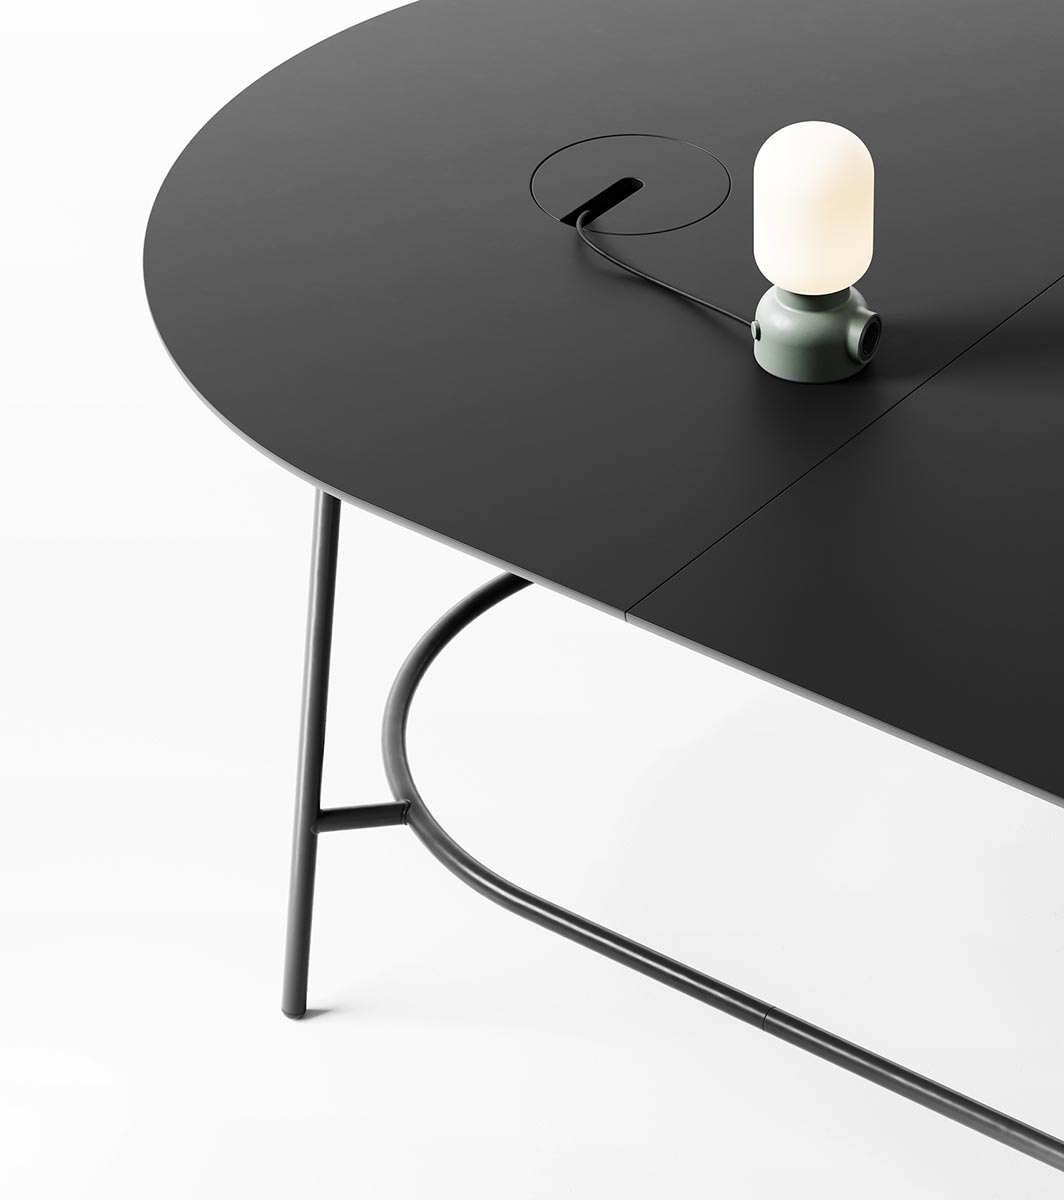 Nest-System-Table-Form-Us-With-Love-04